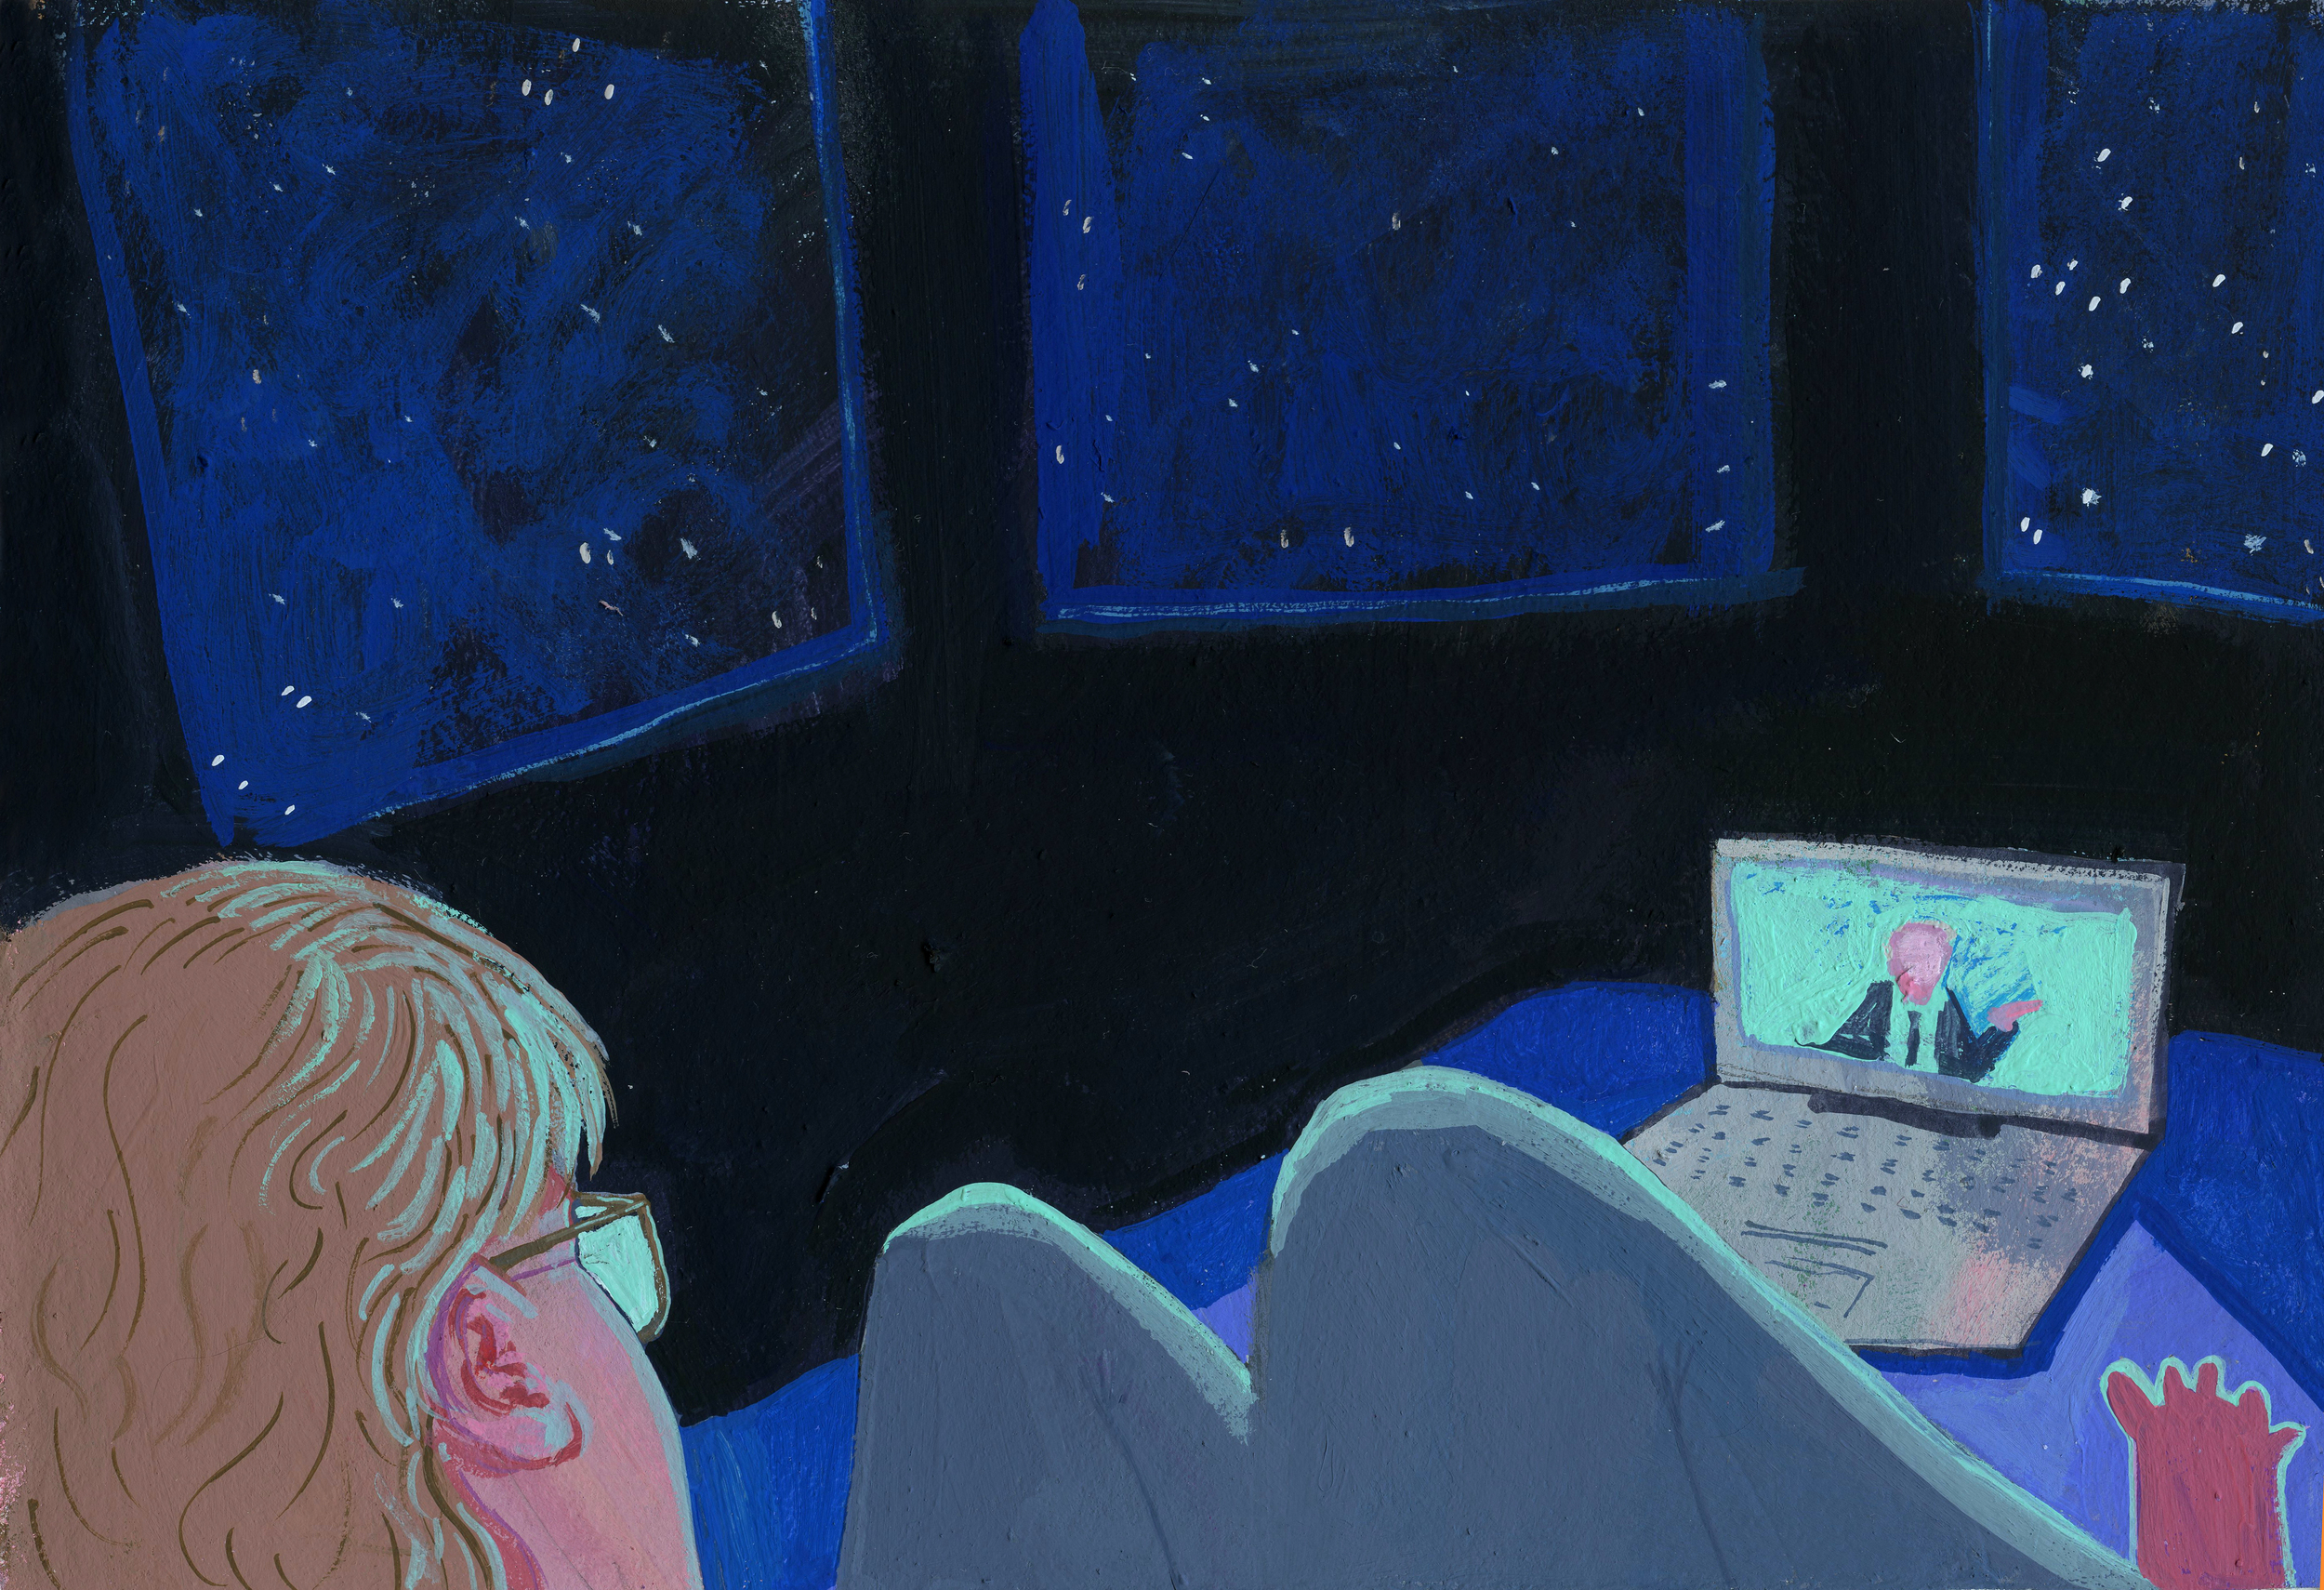 Watching the debate alone and in the dark like a scary movie